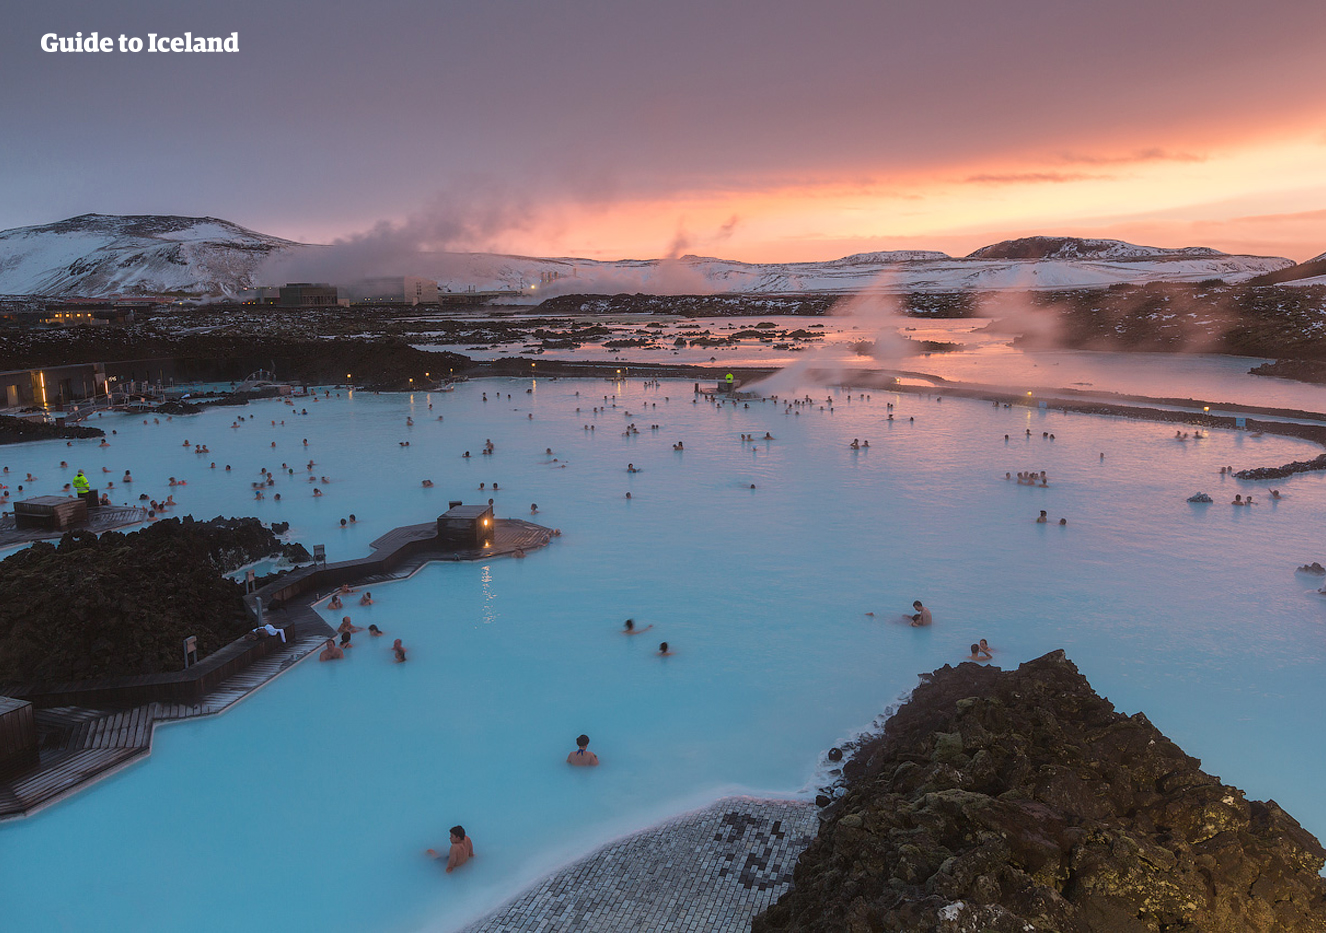 The Blue Lagoon Spa is a popular attraction in Iceland